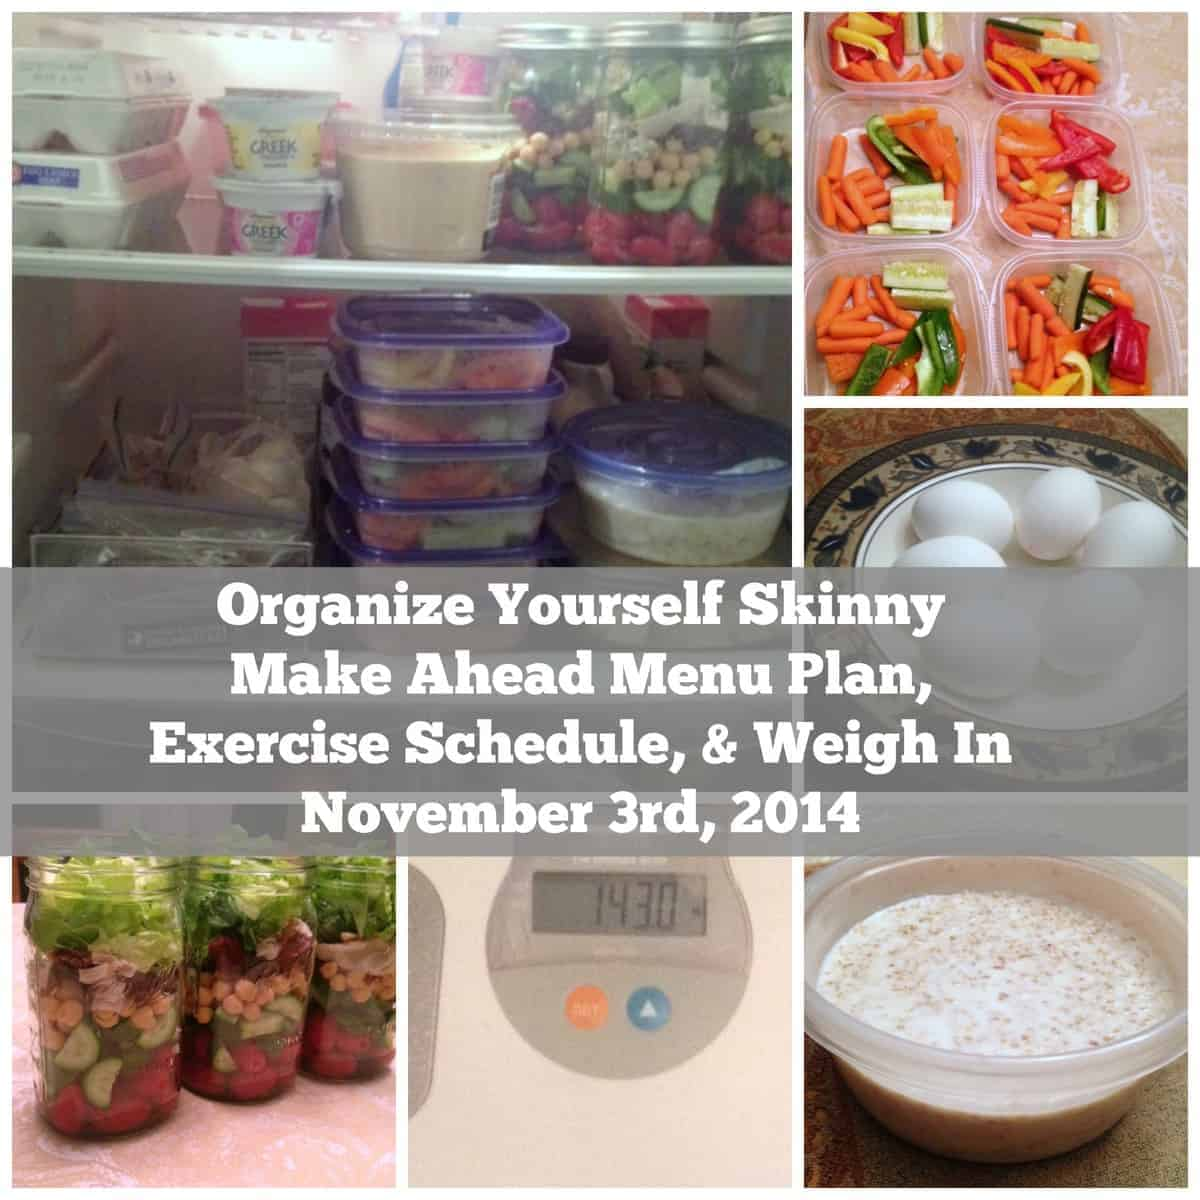 Organize Yourself Skinny Make Ahead Menu Plan, Exercise Schedule, and Weigh in